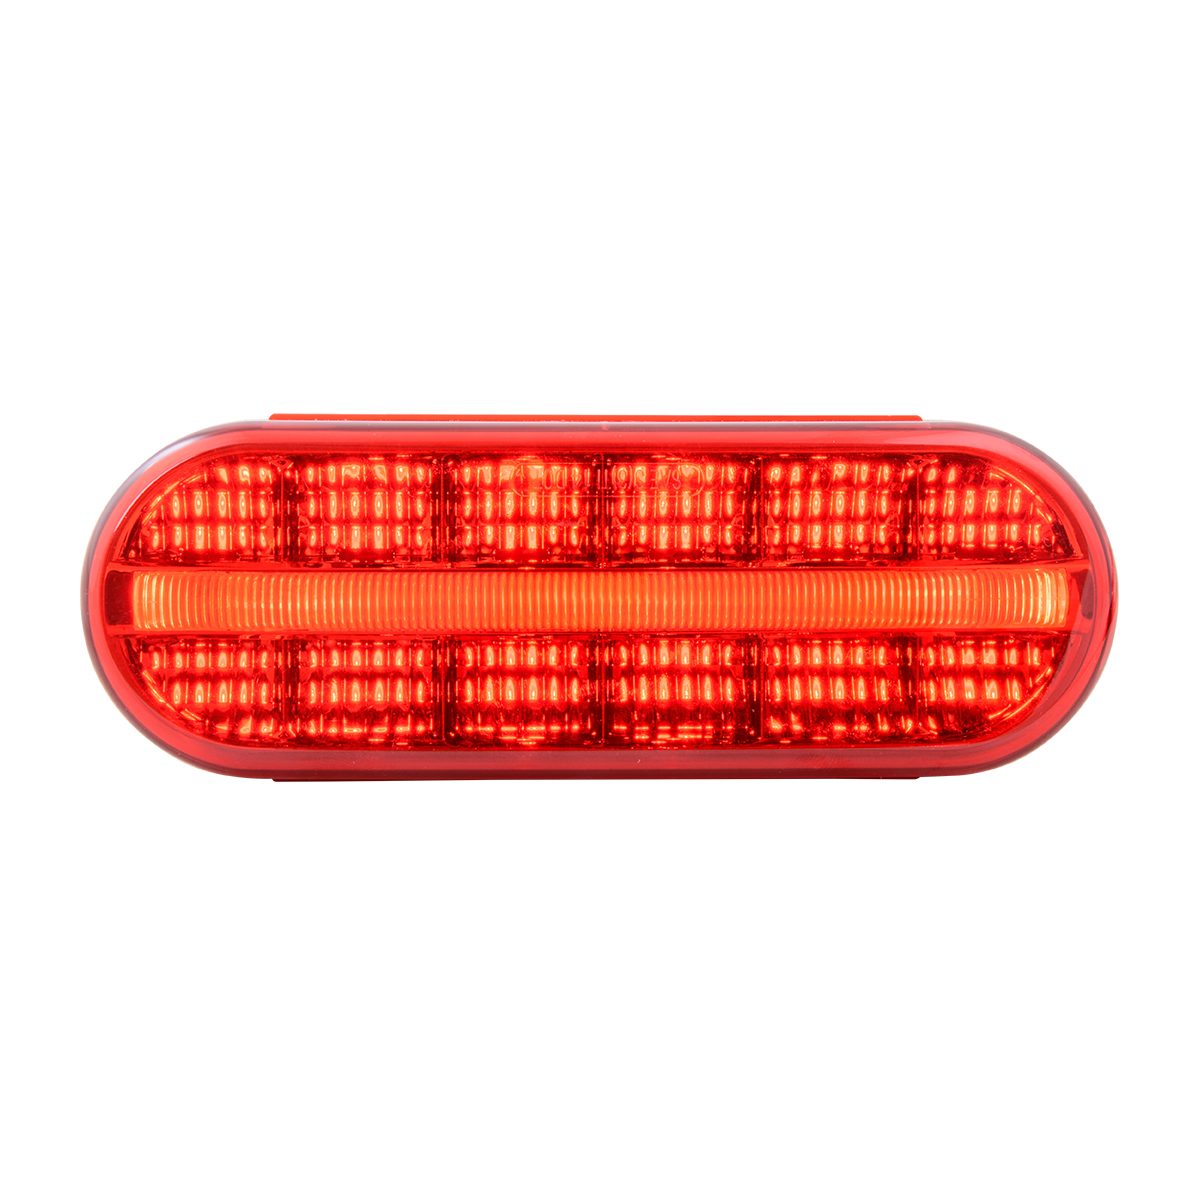 74852 Oval Prime Spyder LED Light in Red/Red